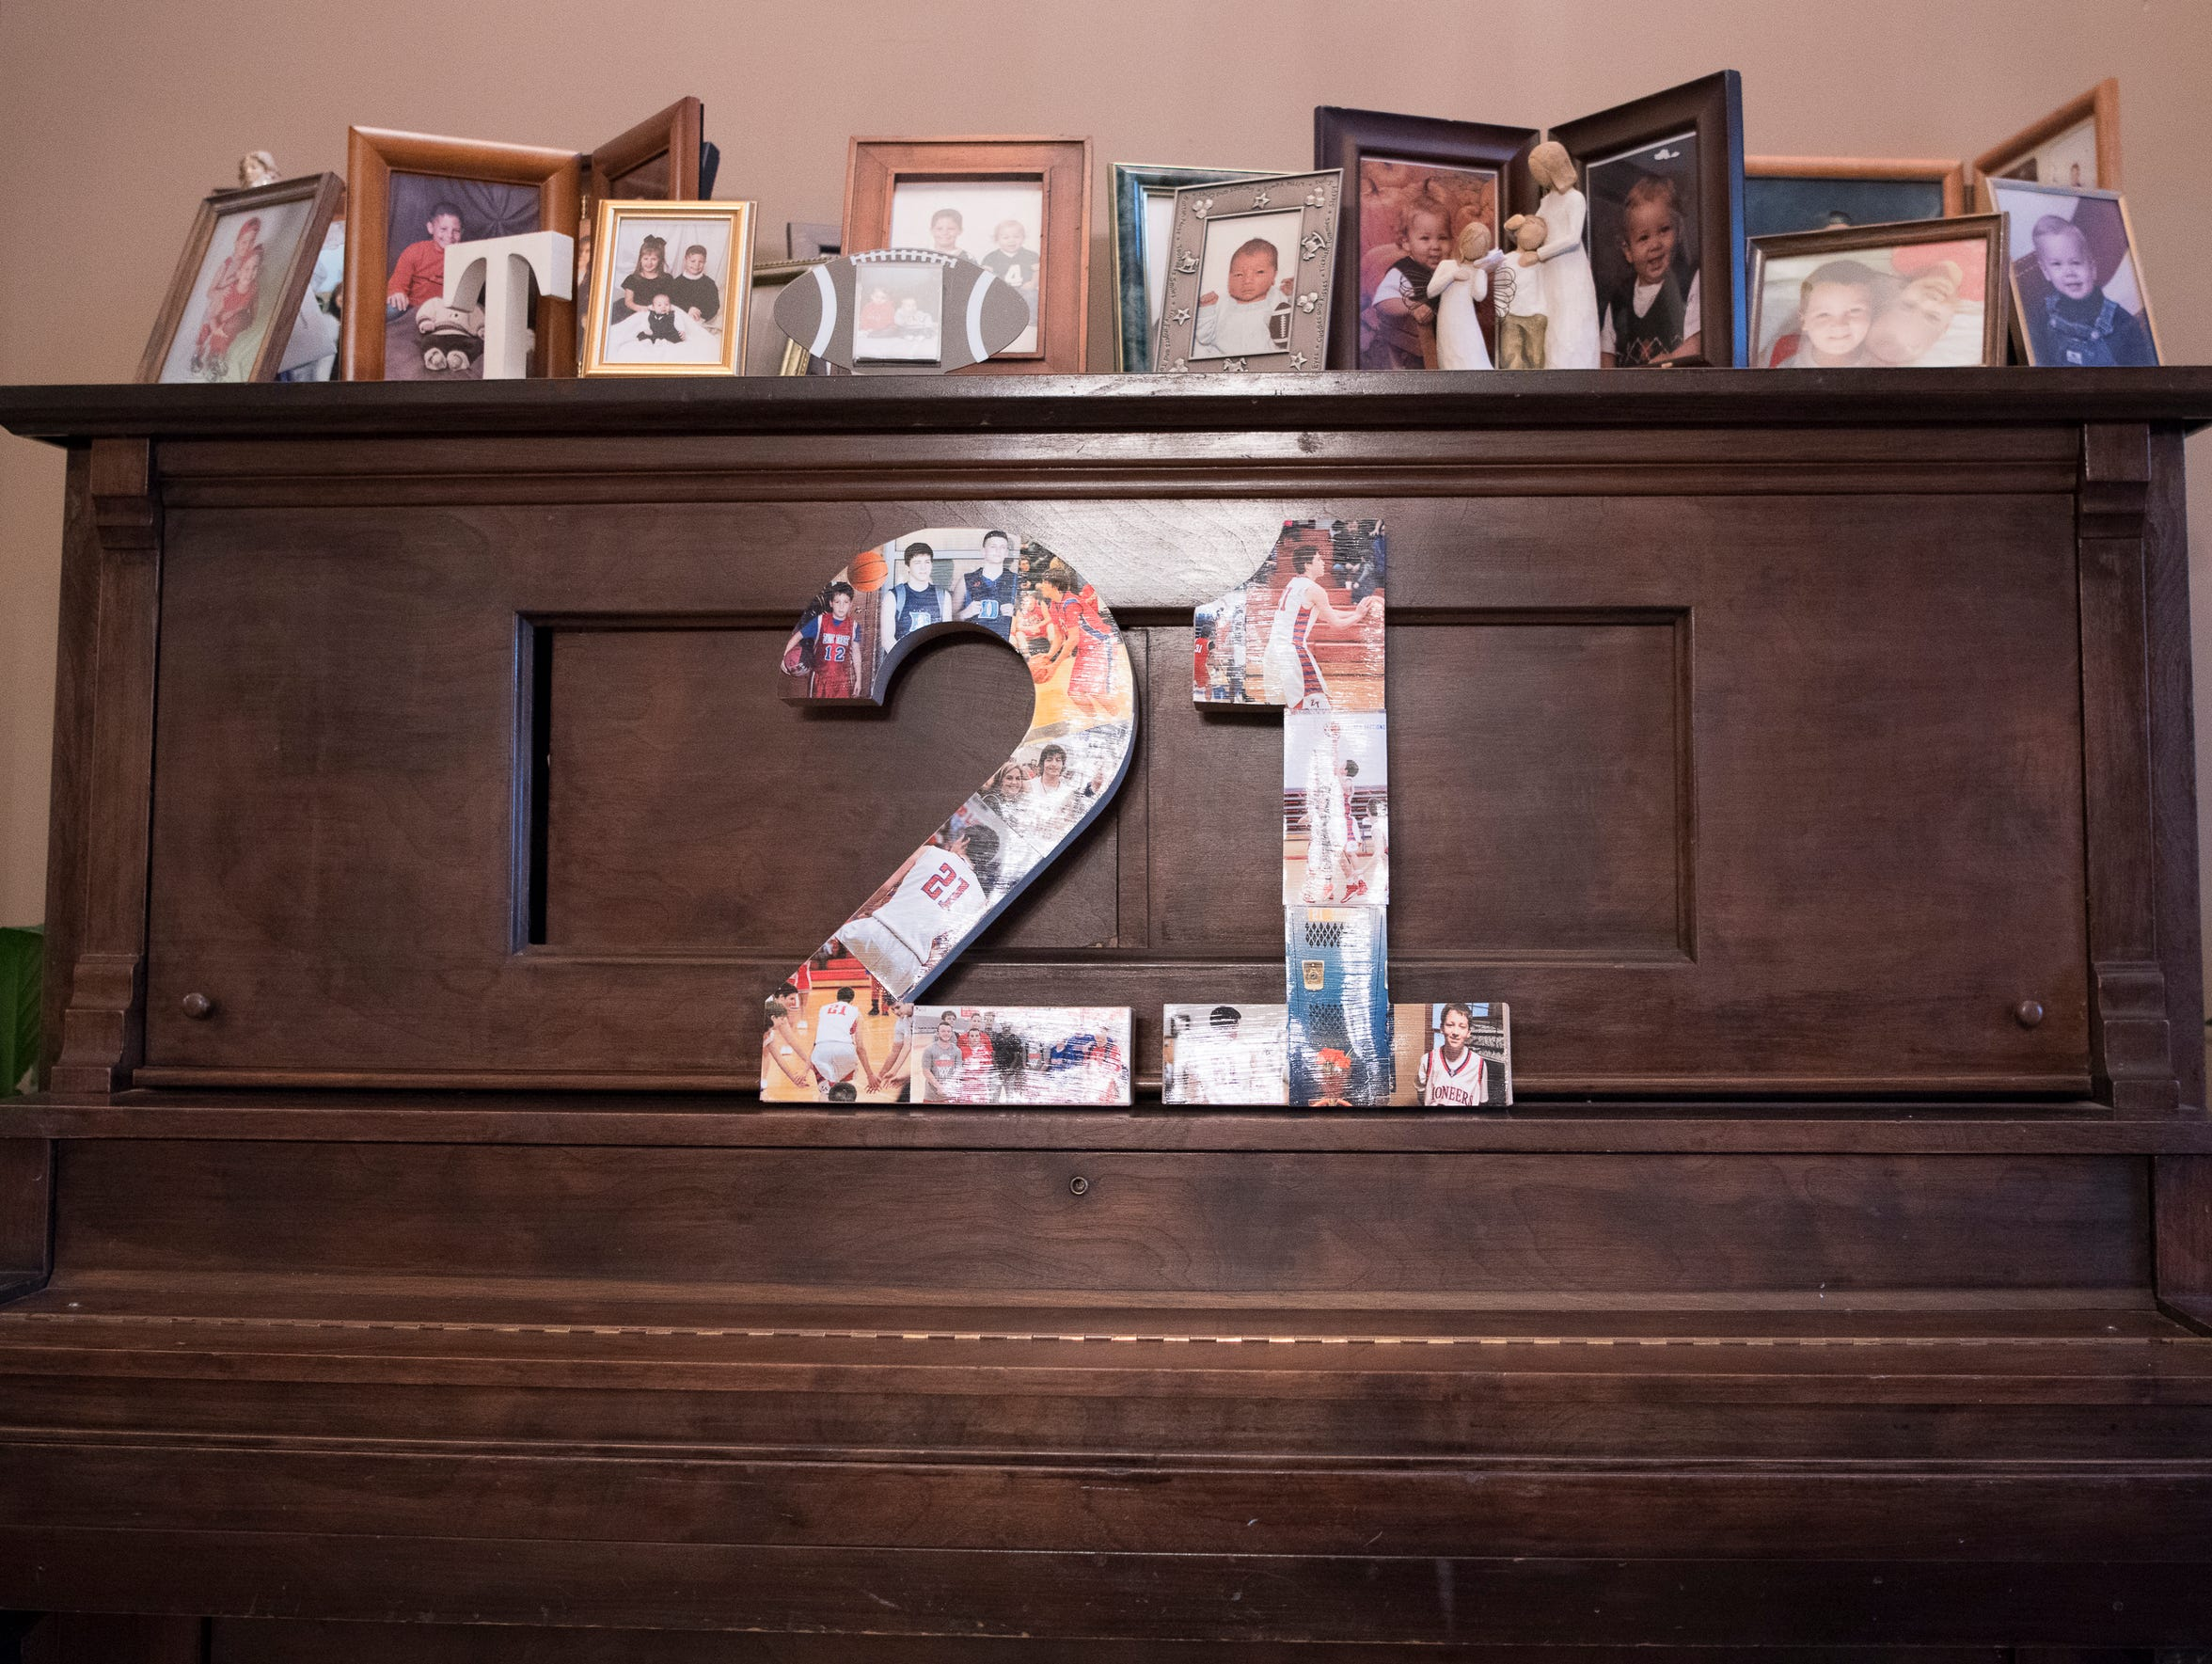 The Miller family keeps Tristan's memory alive through